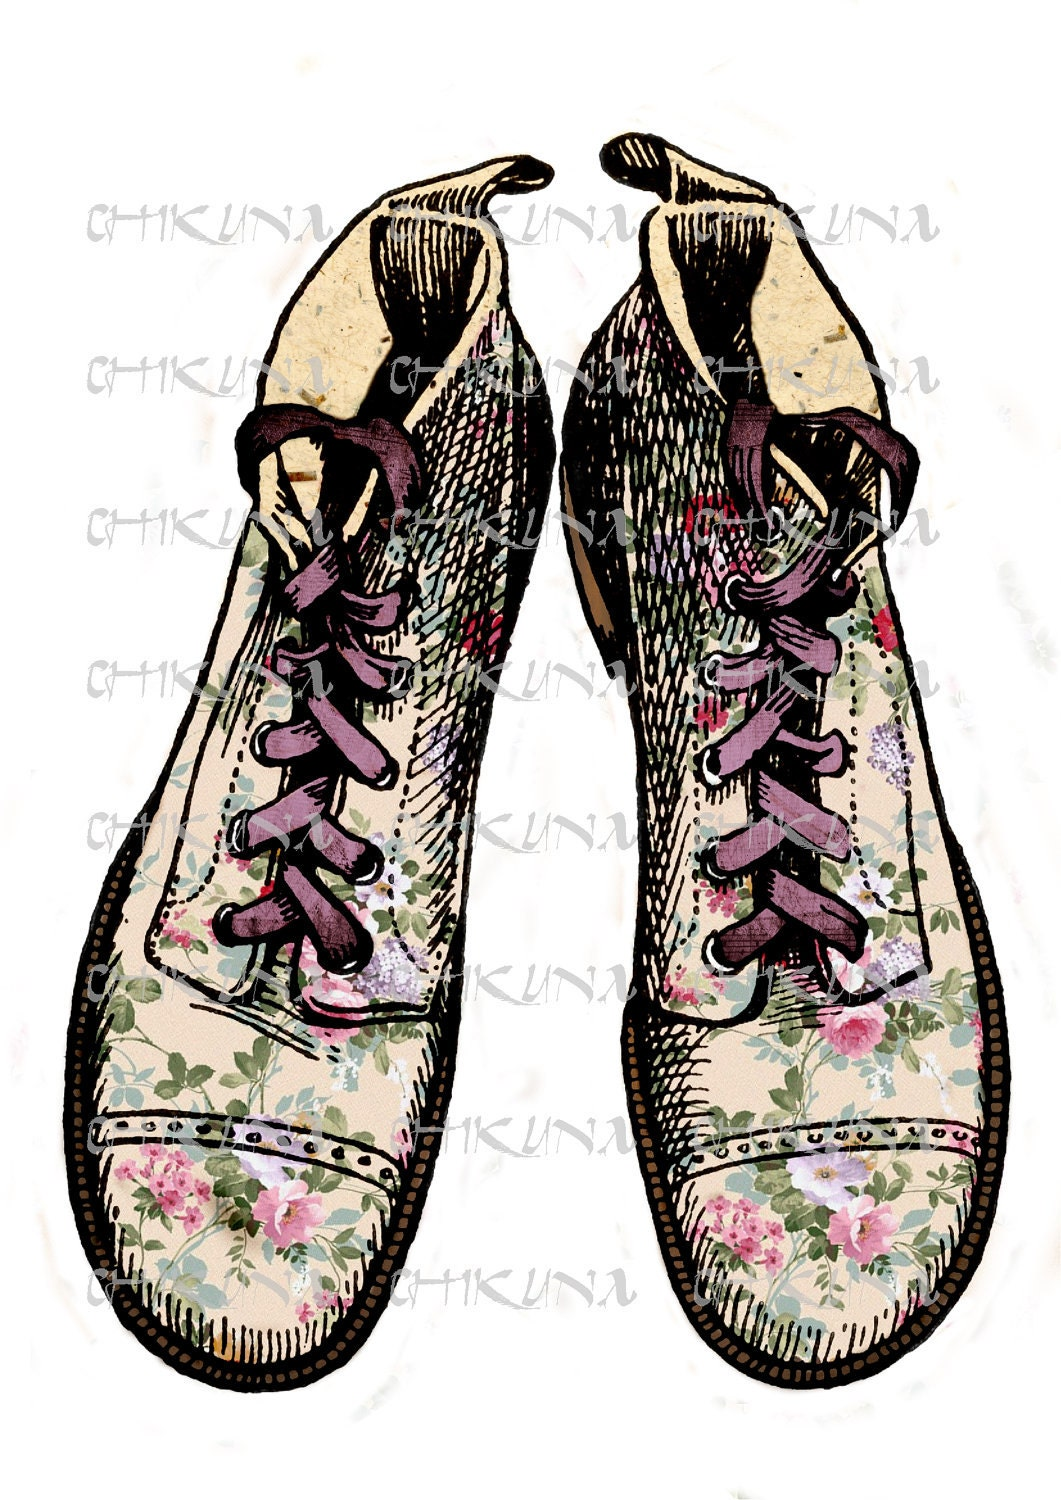 080 - Vintage Romance Village Shoes  - Download and Print - Transfer To Pillows, T-Shirt, Burlap, Tote, Bag. Print on Canvas, Paper - ChikUna